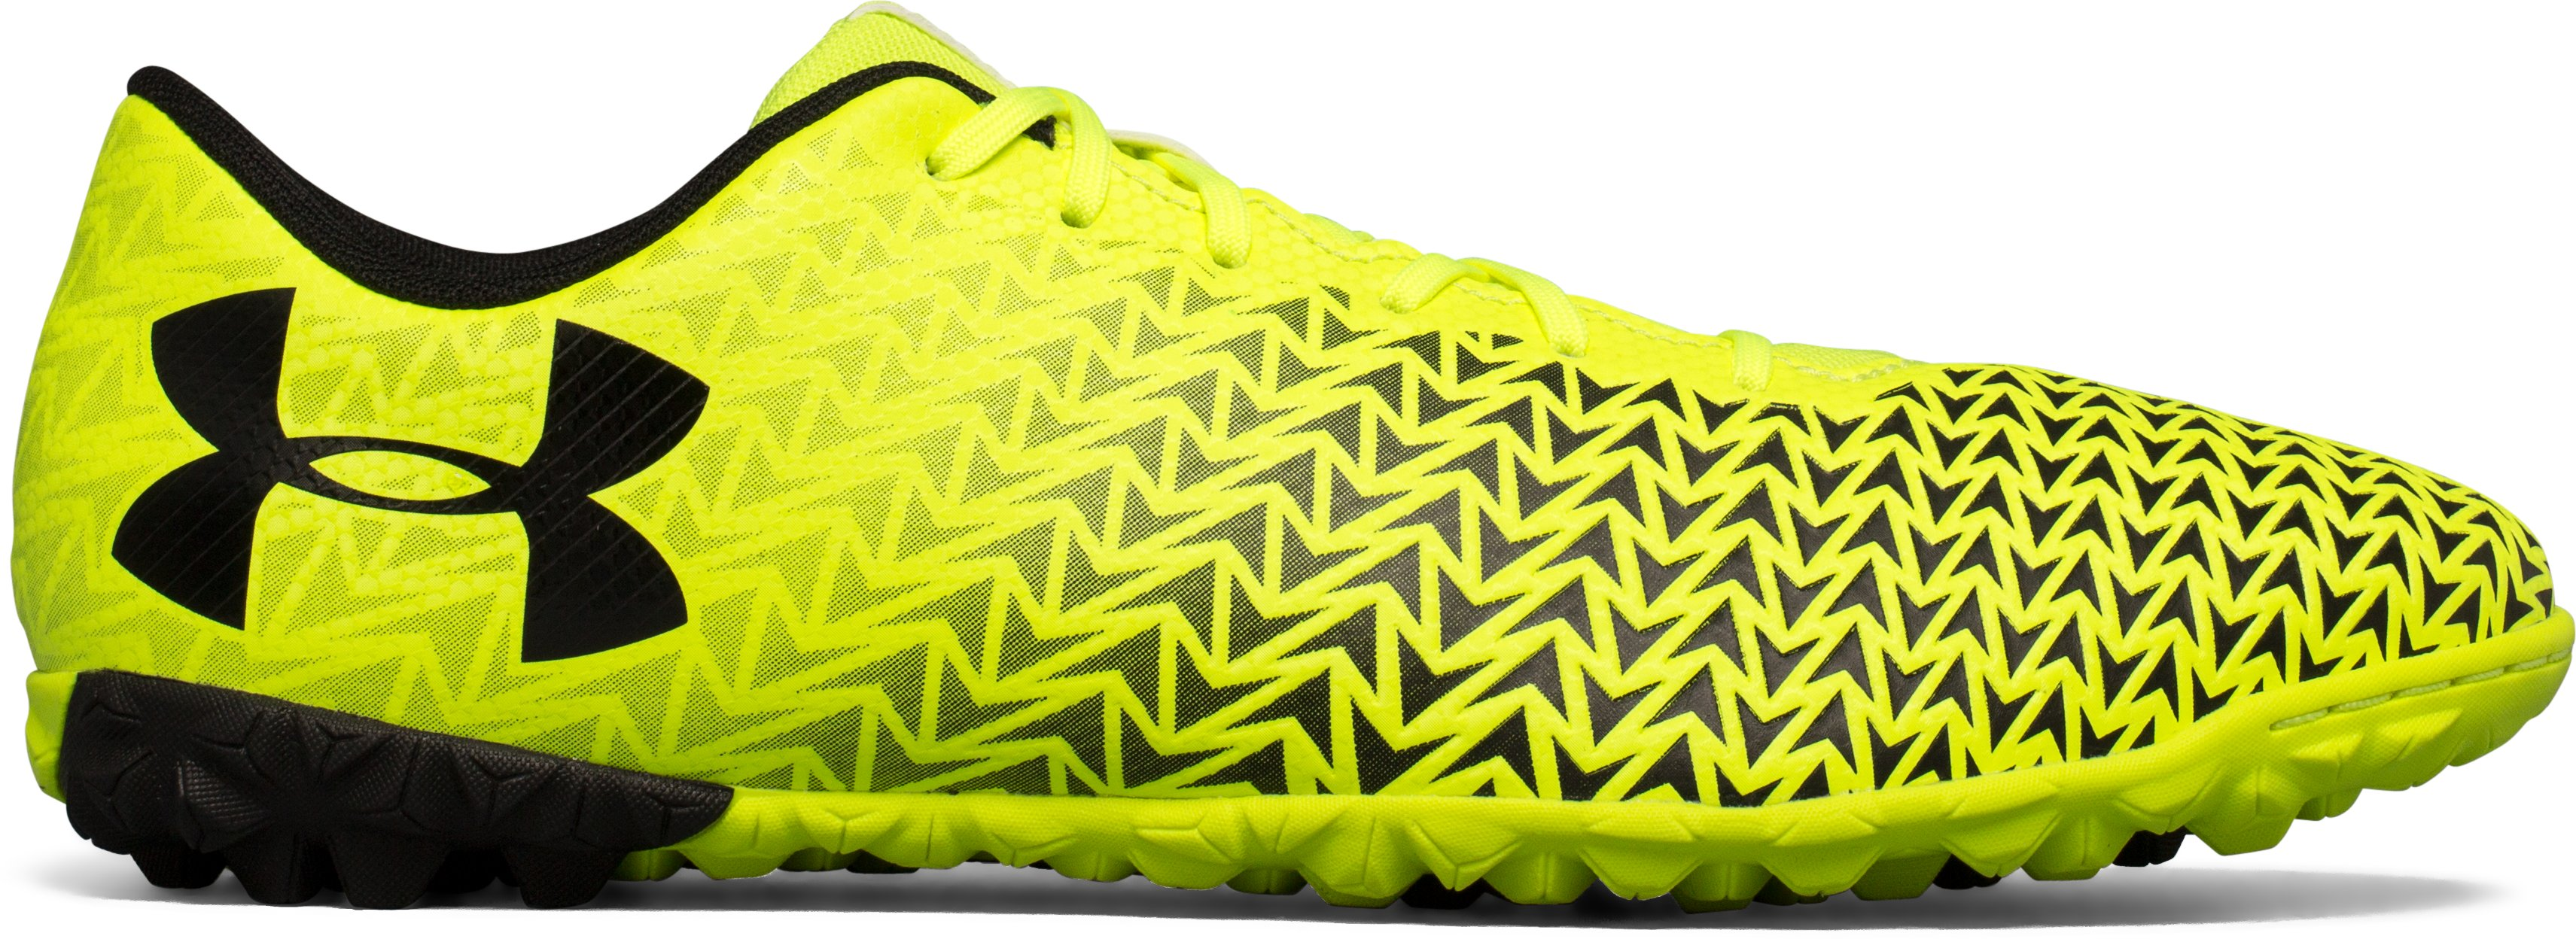 Men's UA CF Force 3.0 Turf Soccer Shoes, High-Vis Yellow